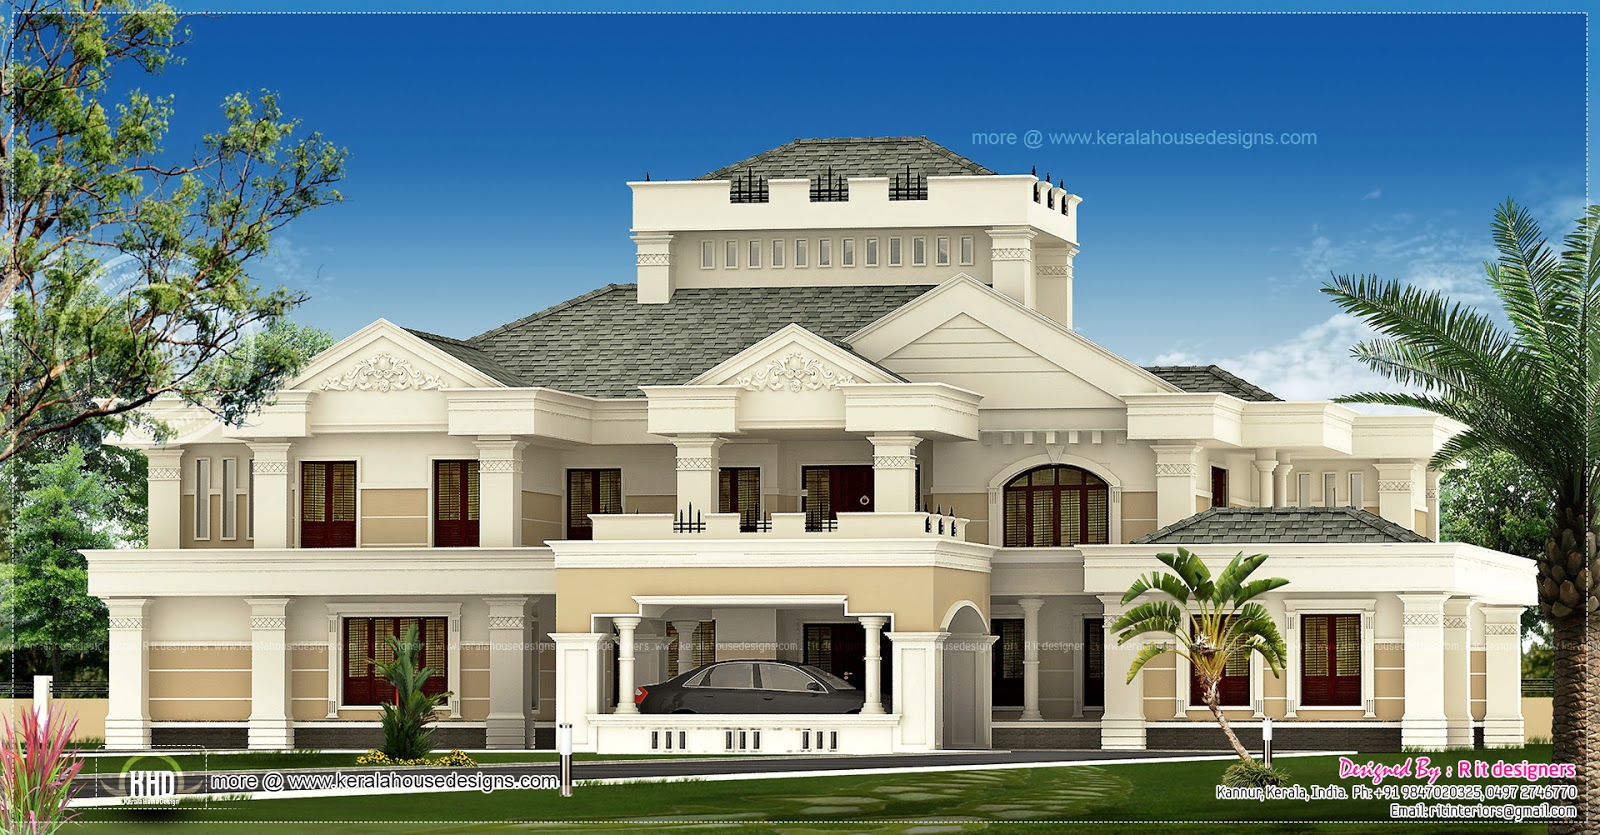 Super luxury kerala house exterior house design plans for Kerala model house photos with details